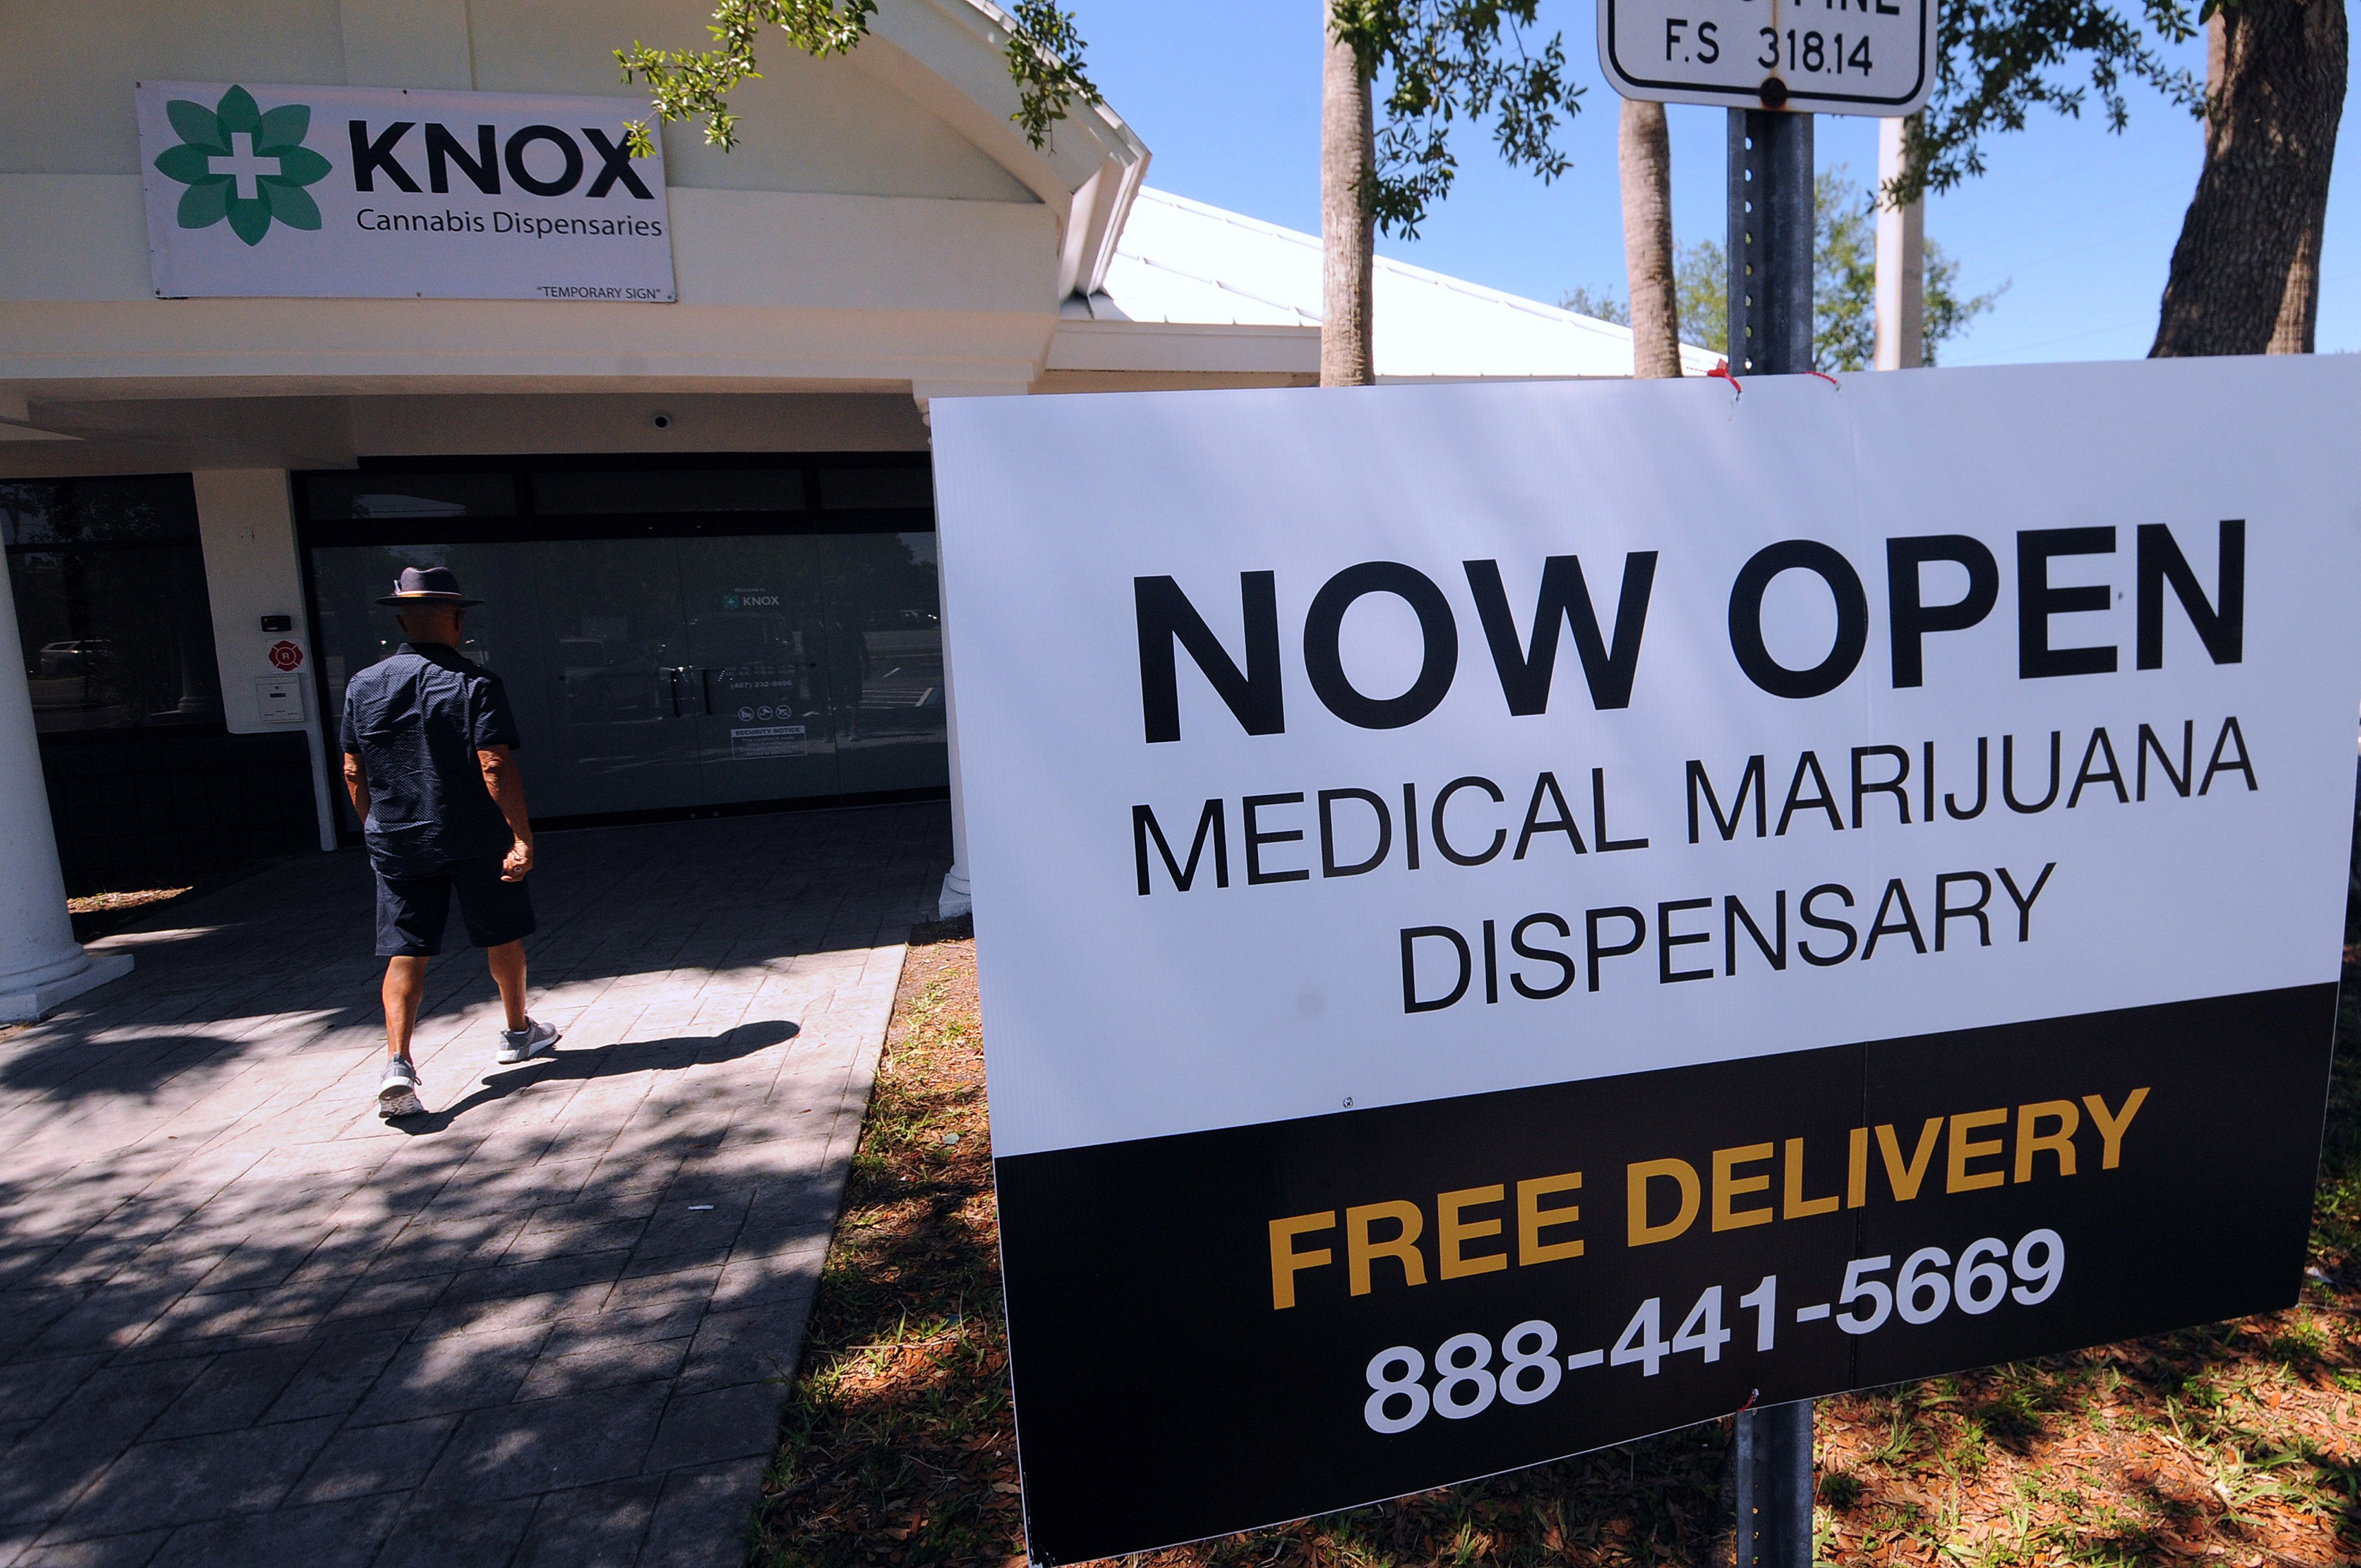 Legalizing medical marijuana does not curb opioid deaths, study says